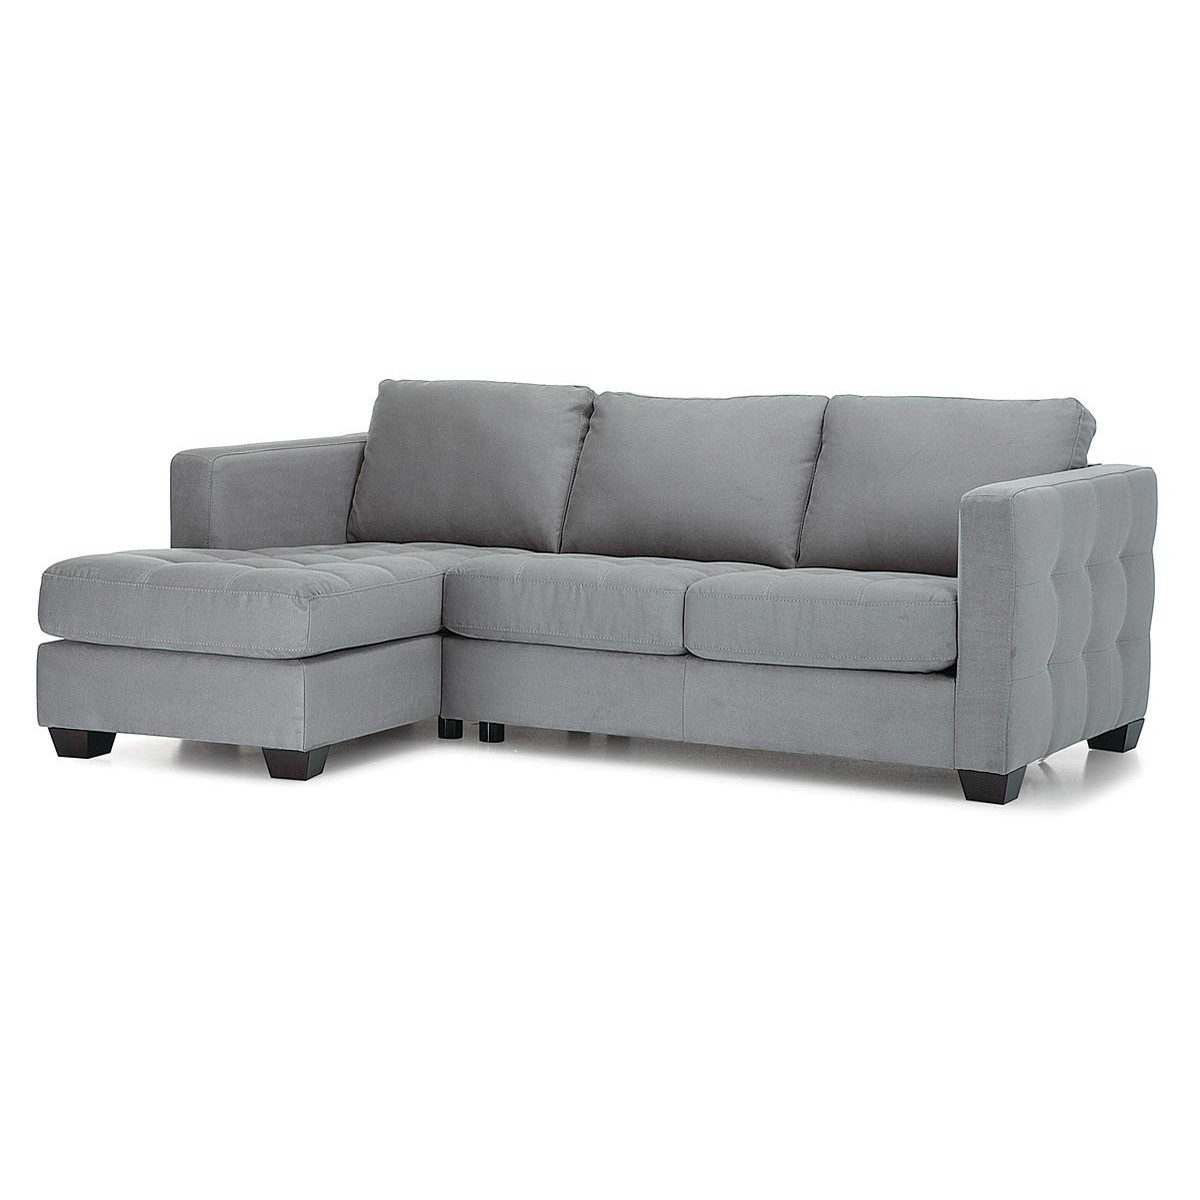 Palliser barrett sectional · display gallery item 1